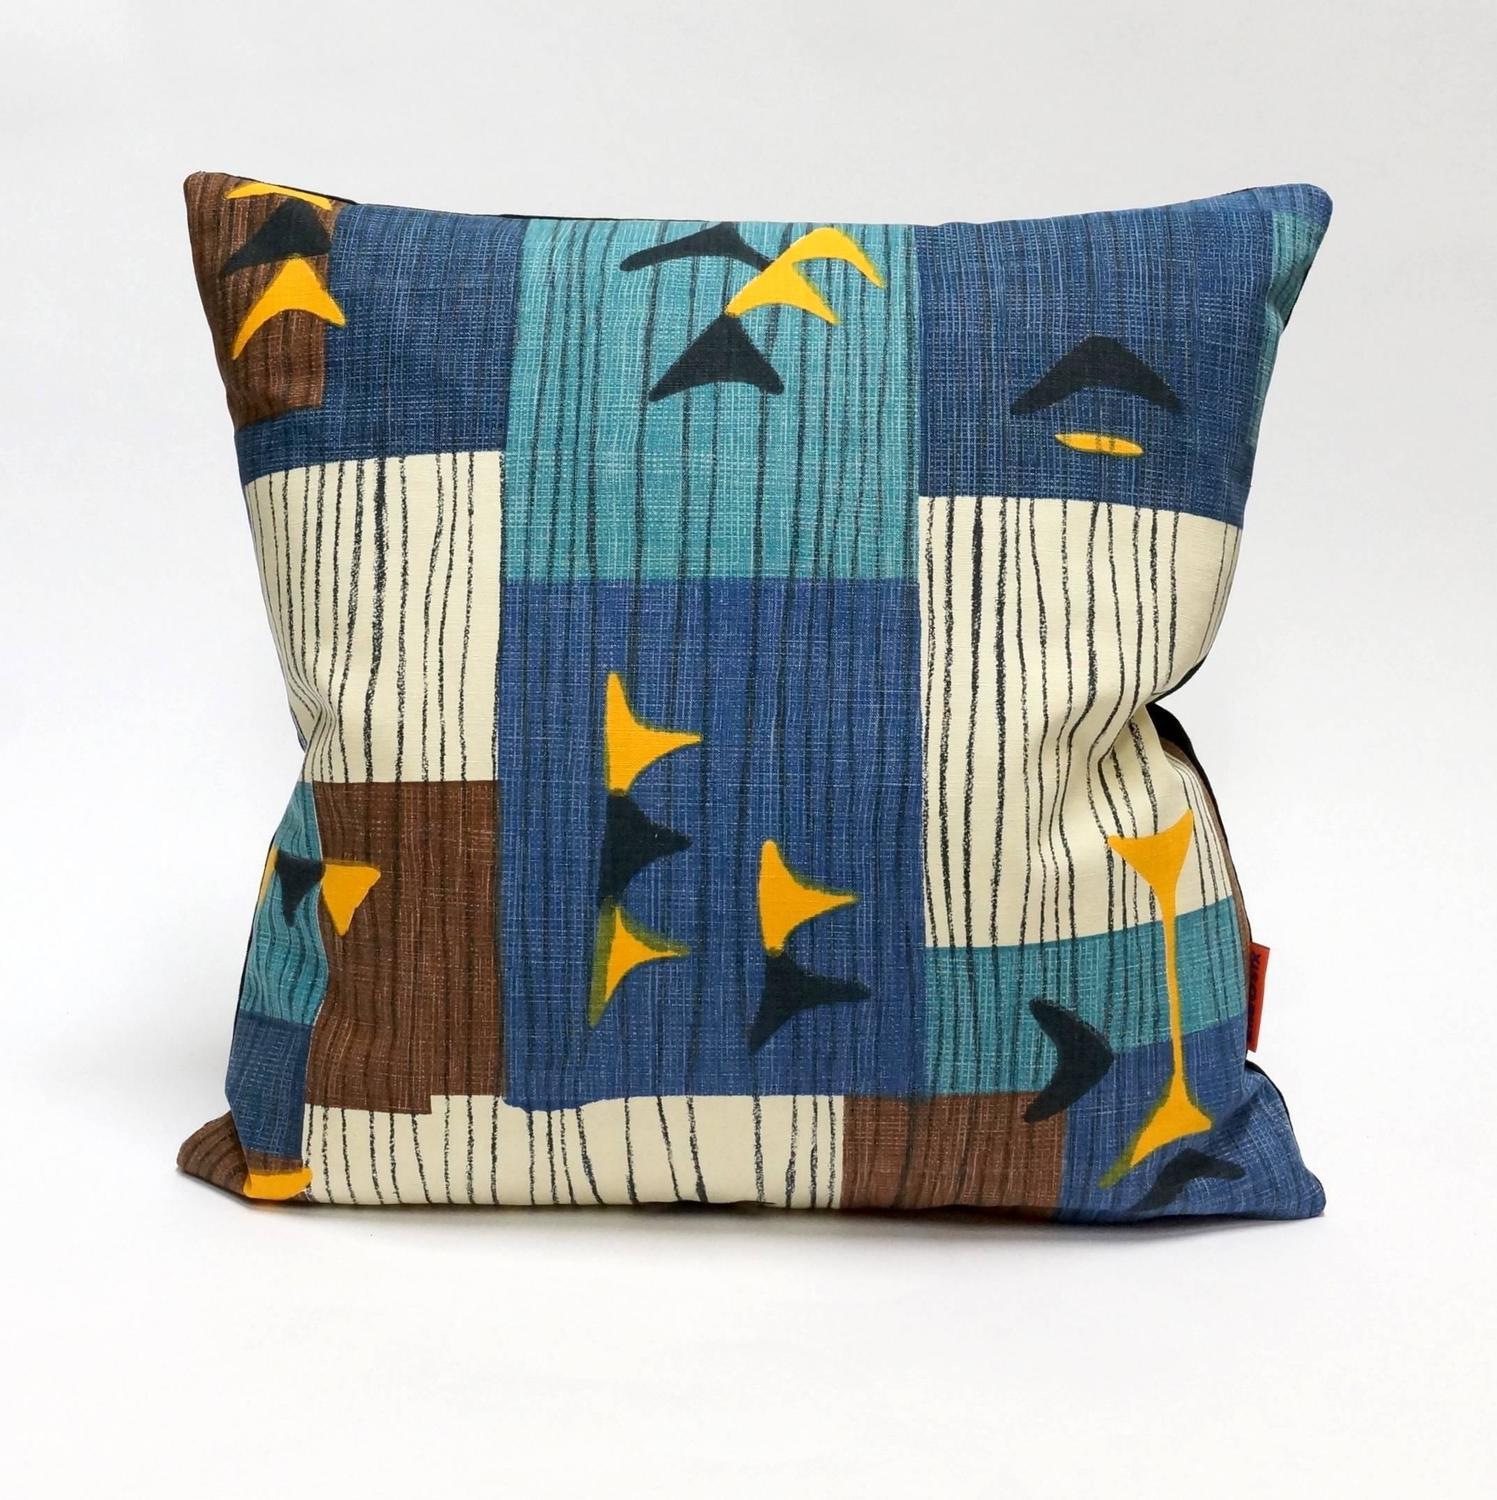 Blue Mid-Century Modern Accent Pillows by EllaOsix For Sale at 1stdibs